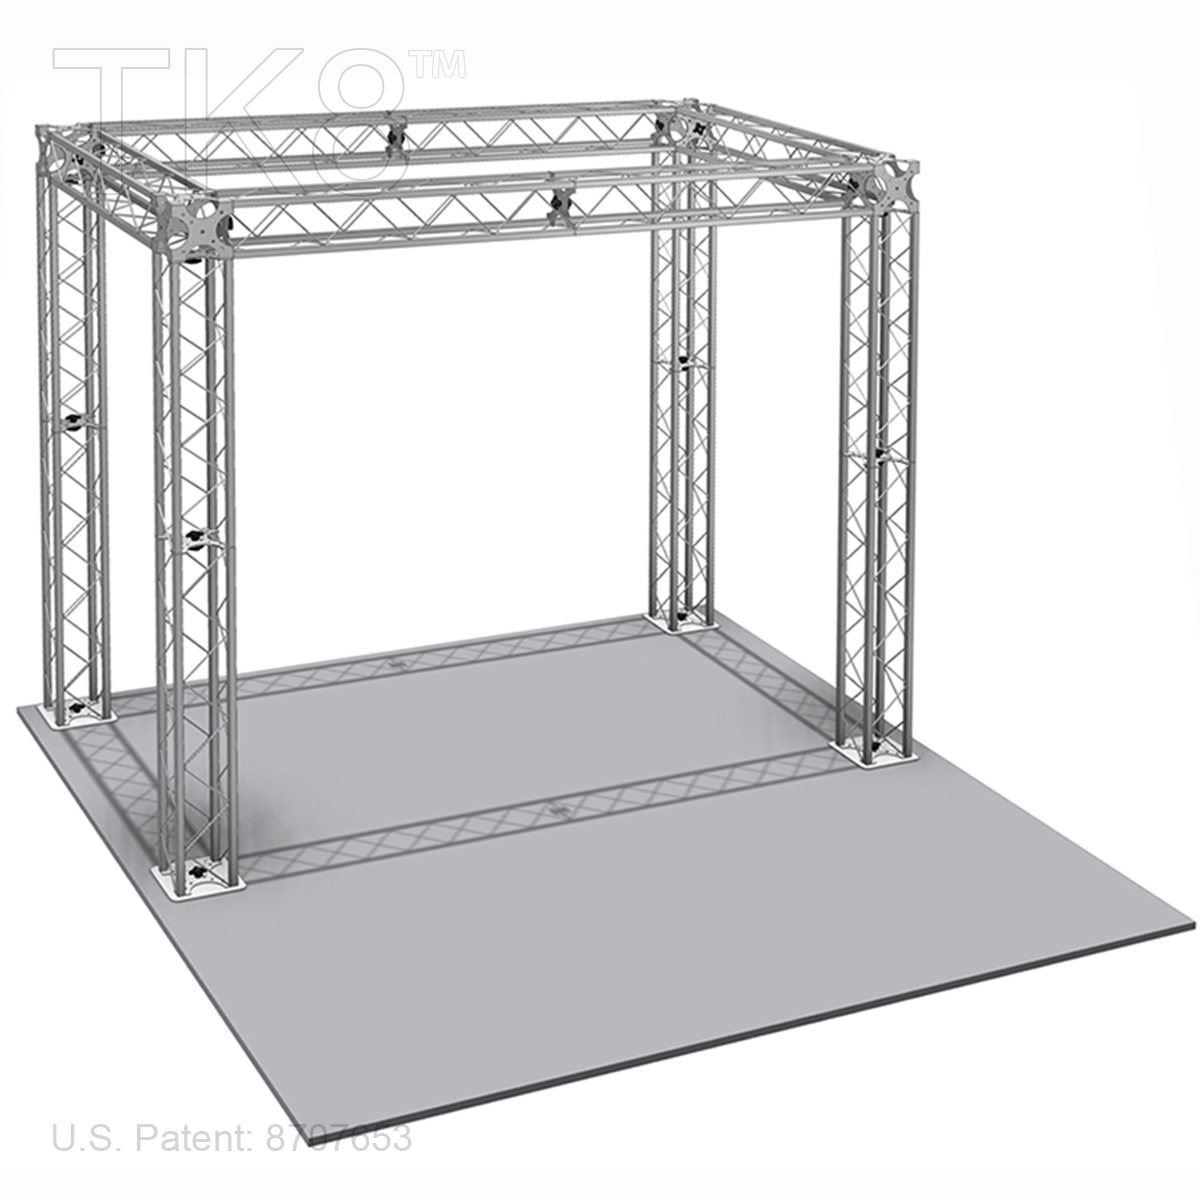 NOAH - 10FT X 10FT TK8 ALUMINUM BOX TRUSS BOOTH<BR>[FRAME ONLY]